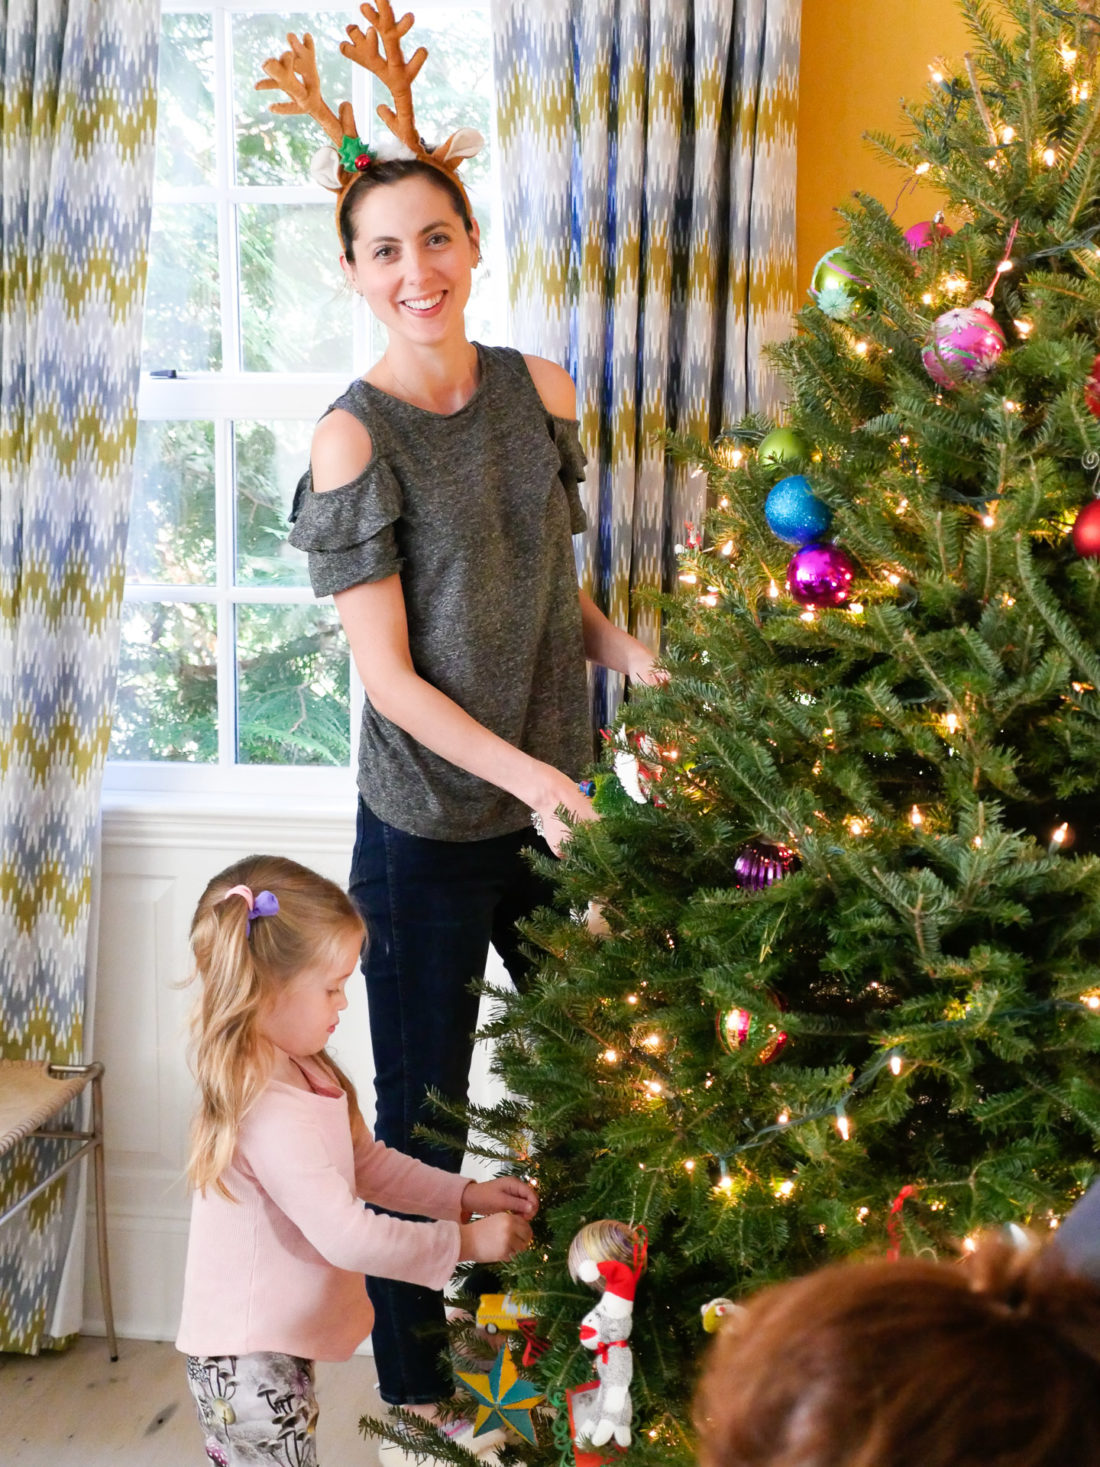 Eva Amurri Martino wears reindeer antlers and decorates her Christmas tree with her family using a variety of ornaments collected over the years